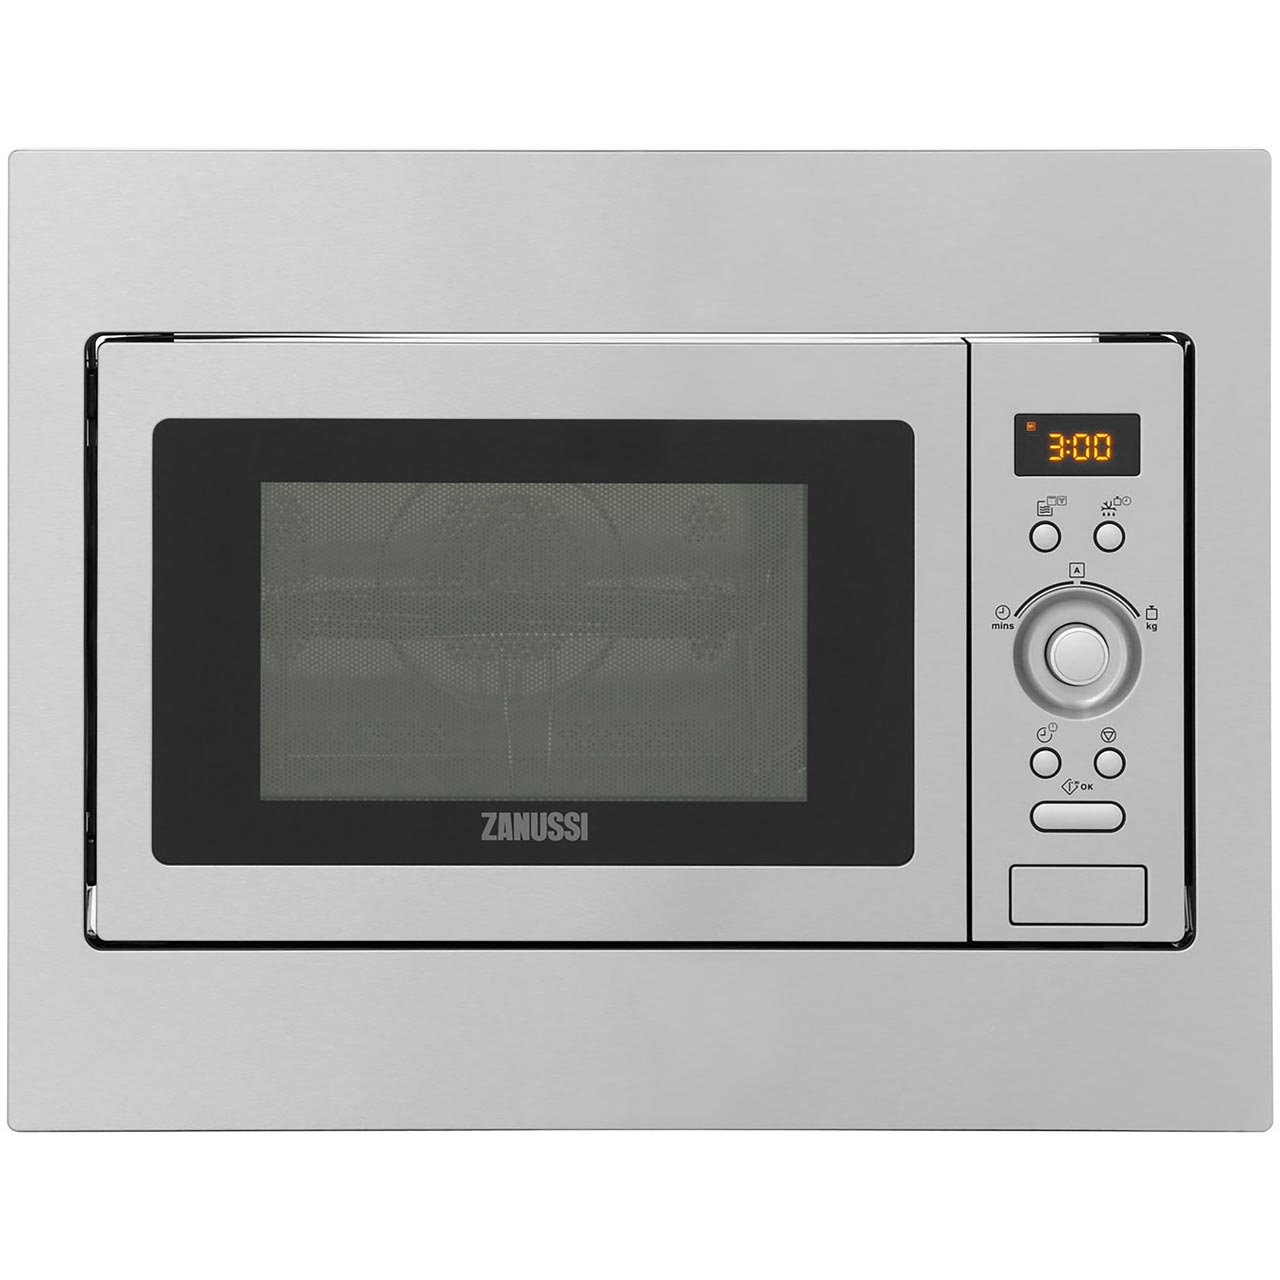 Microwave With Built In Toaster ~ Microwave with toaster built in bestmicrowave